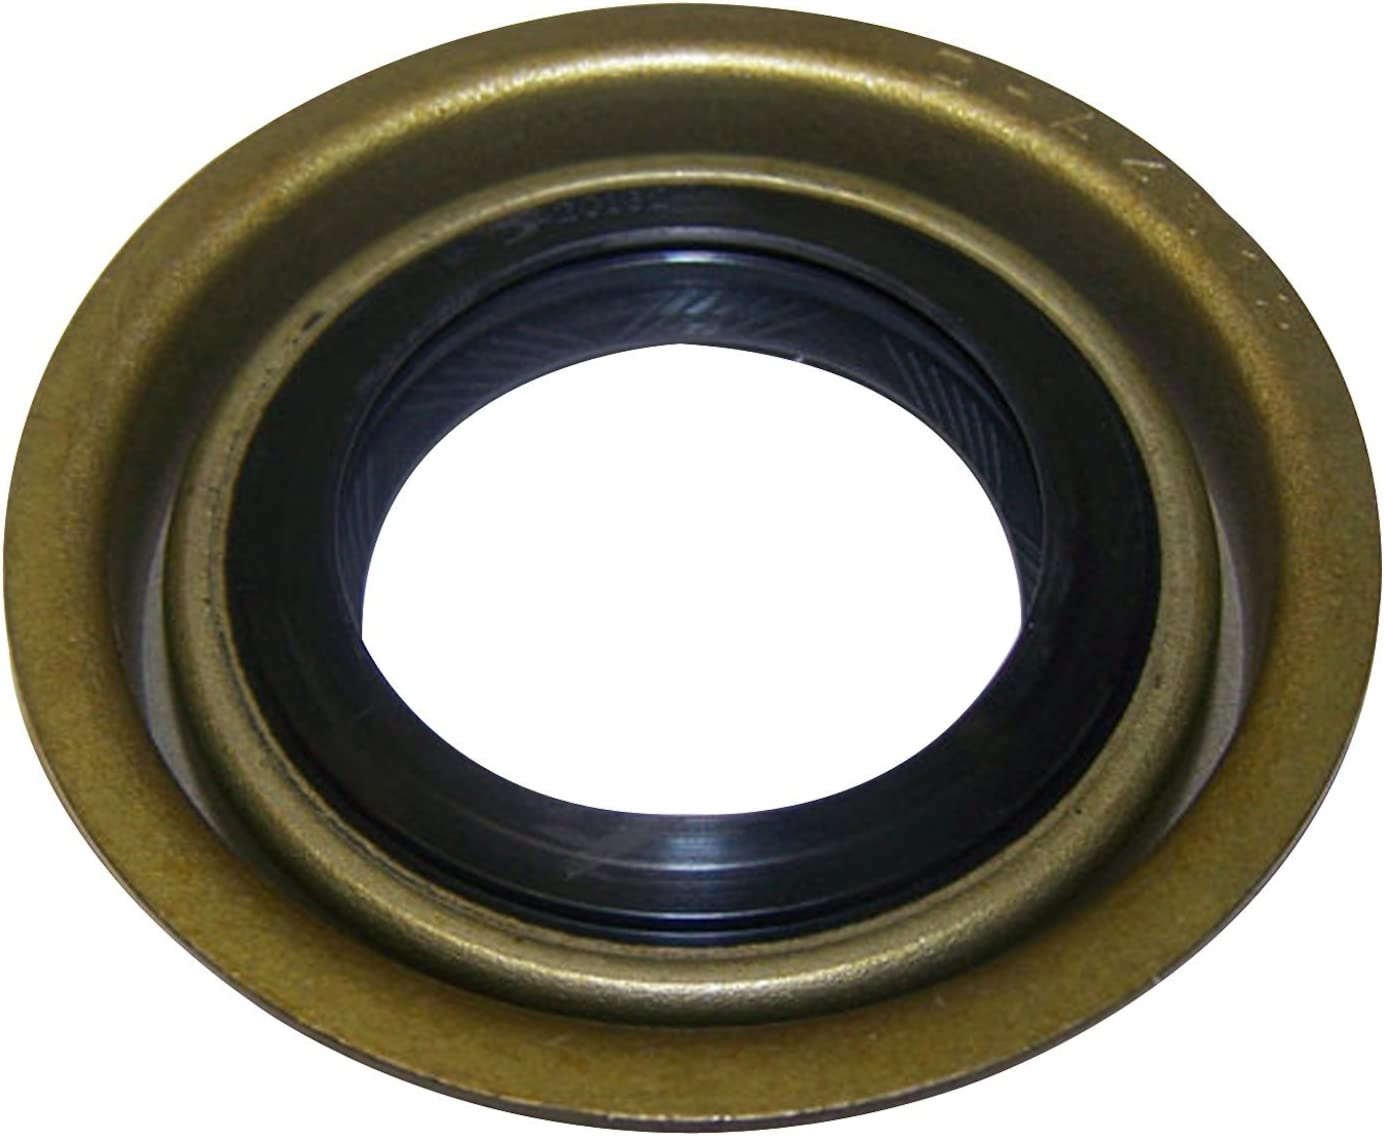 Popular brand in the world Crown free shipping Automotive Axle Shaft Driveline Seal and Axles